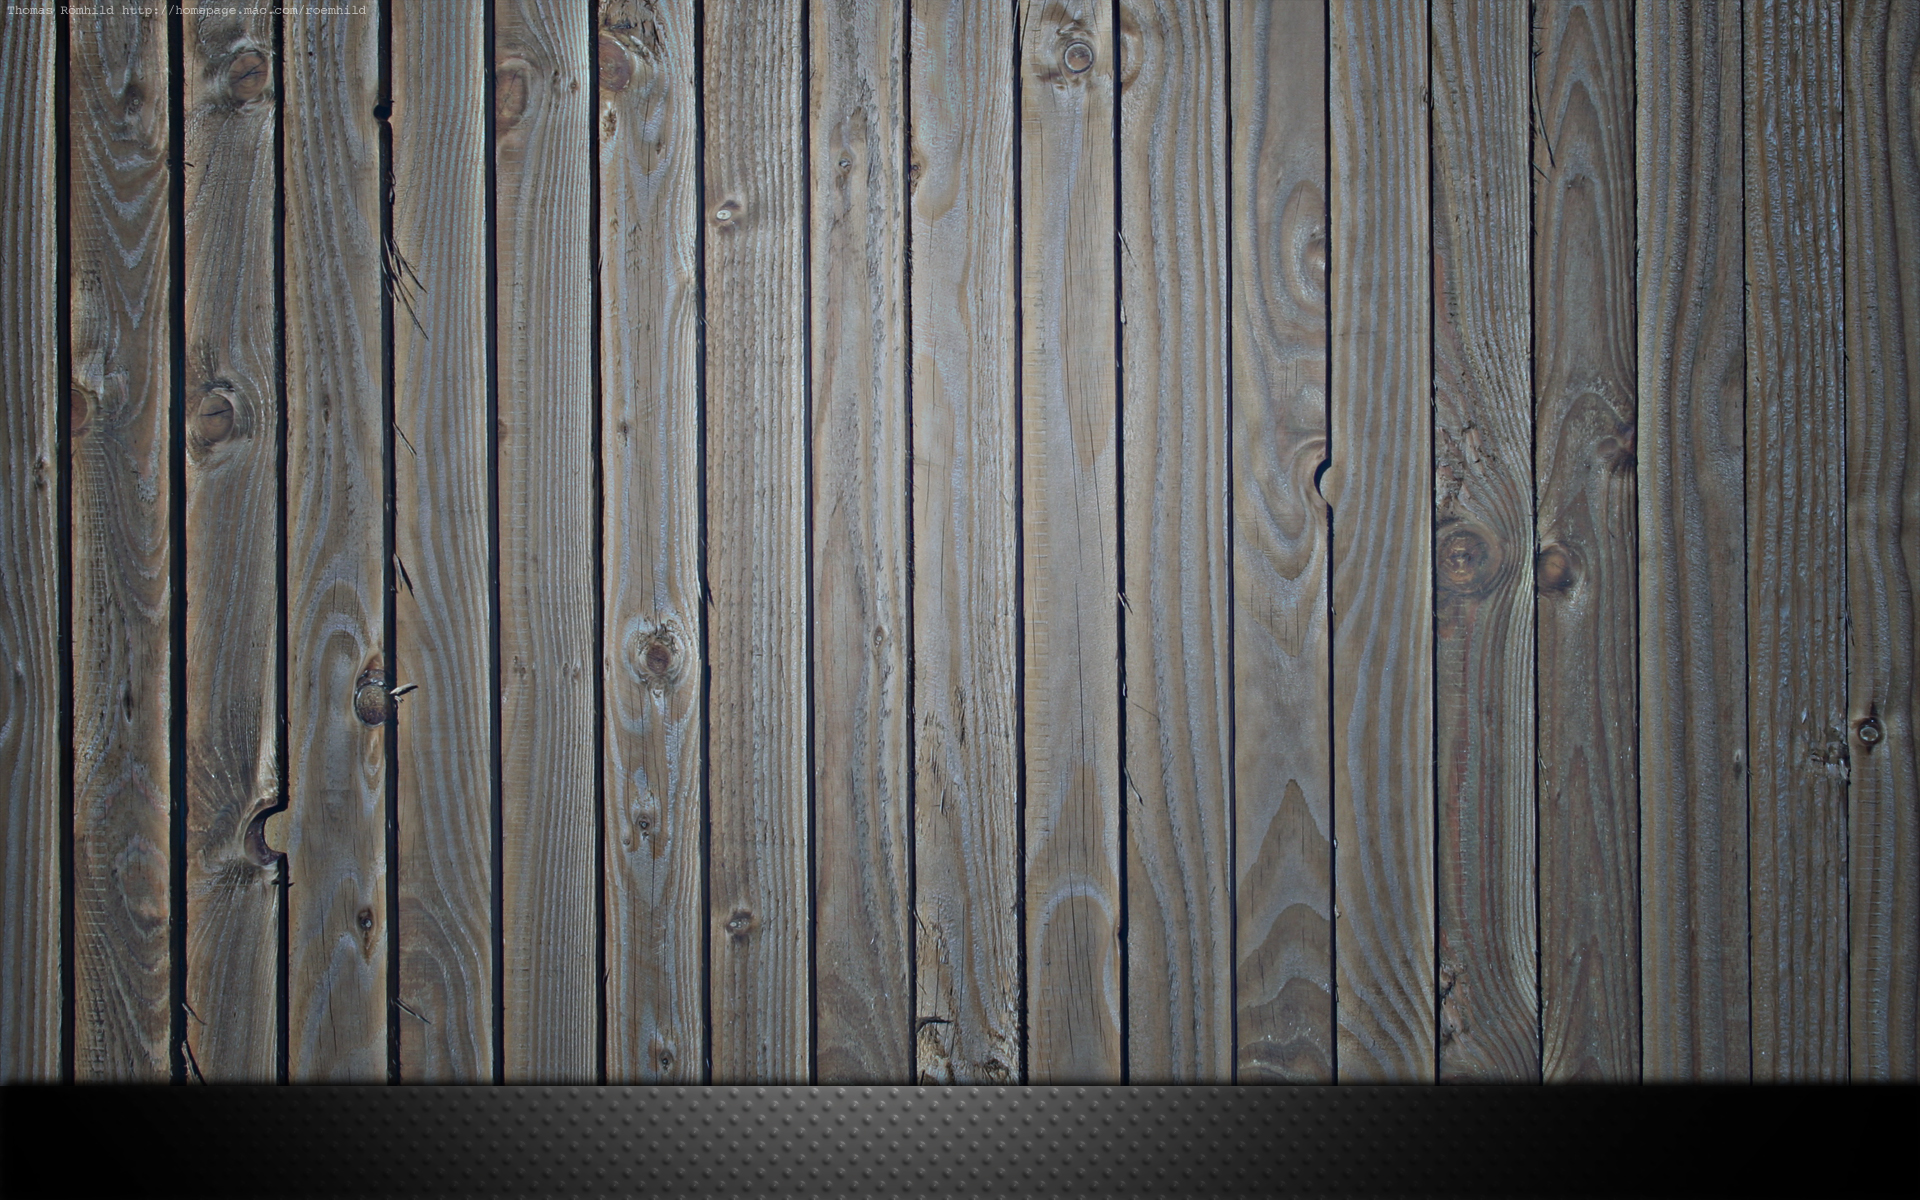 Fence Background Wallpaper : Wooden fence background  Awesome Wallpapers